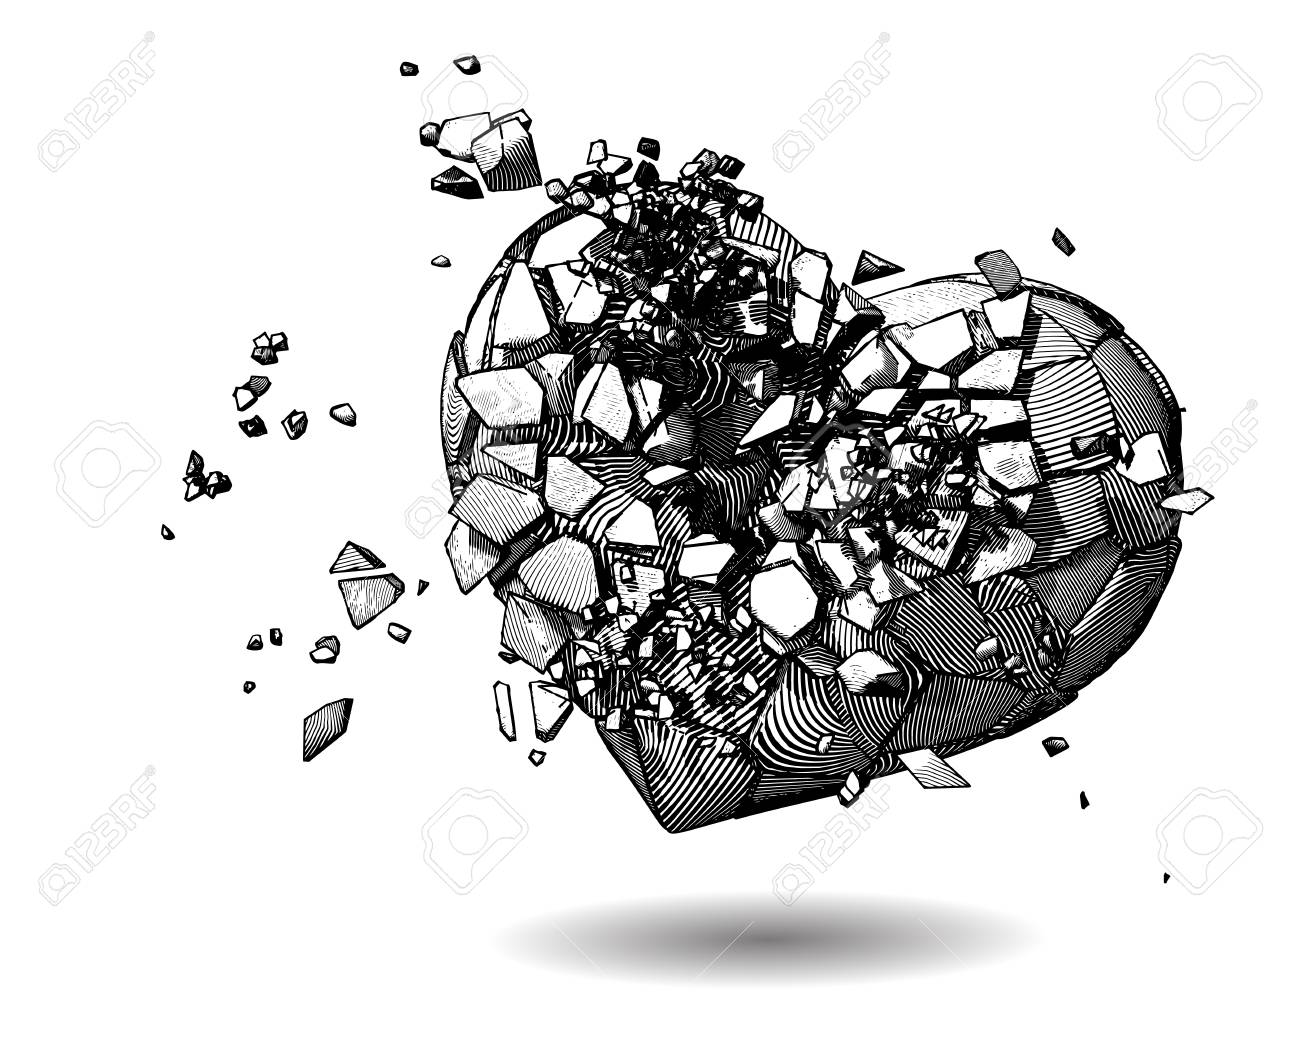 Line Art Illustration Style : Monochrome broken heart with pen and ink drawing illustration